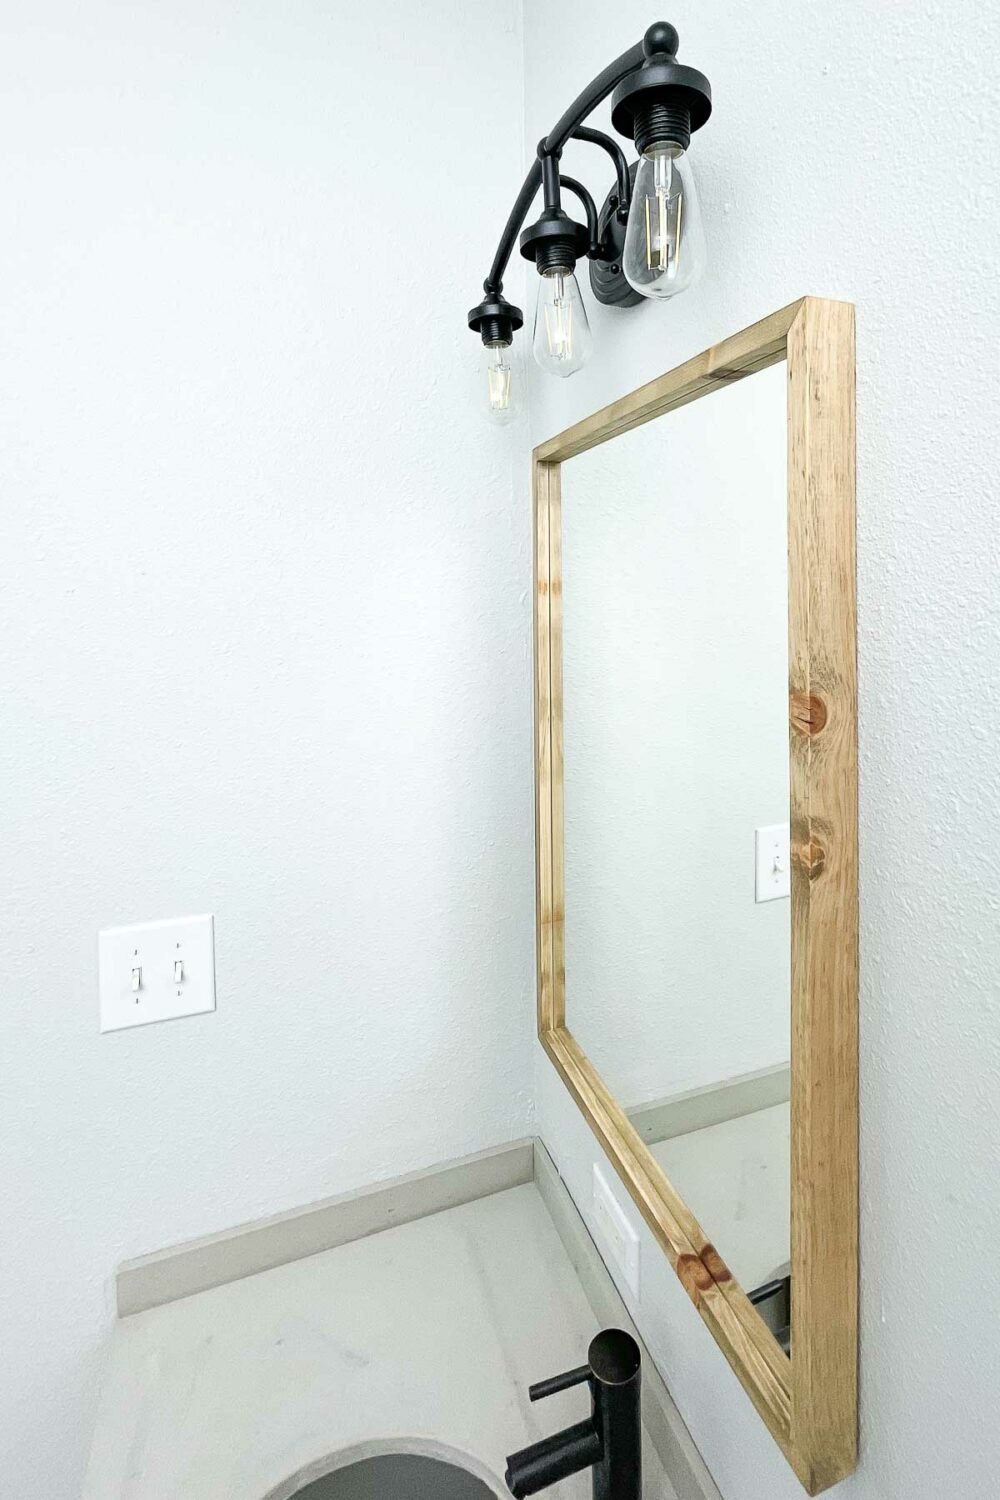 Looking at the side of the mirror in the bathroom on the light gray walls.